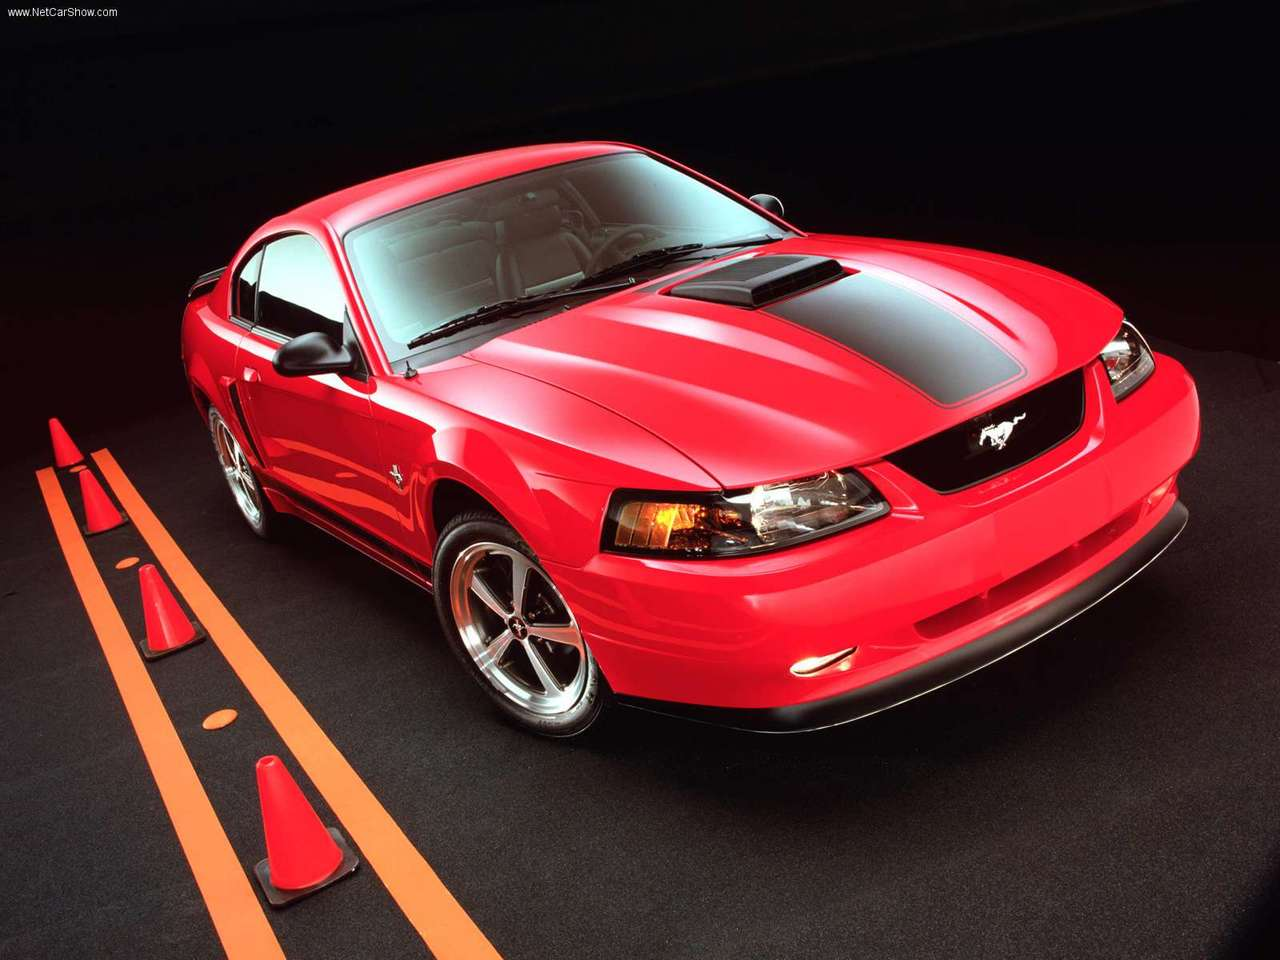 2003 Ford Mustang Mach 1 photo - 1